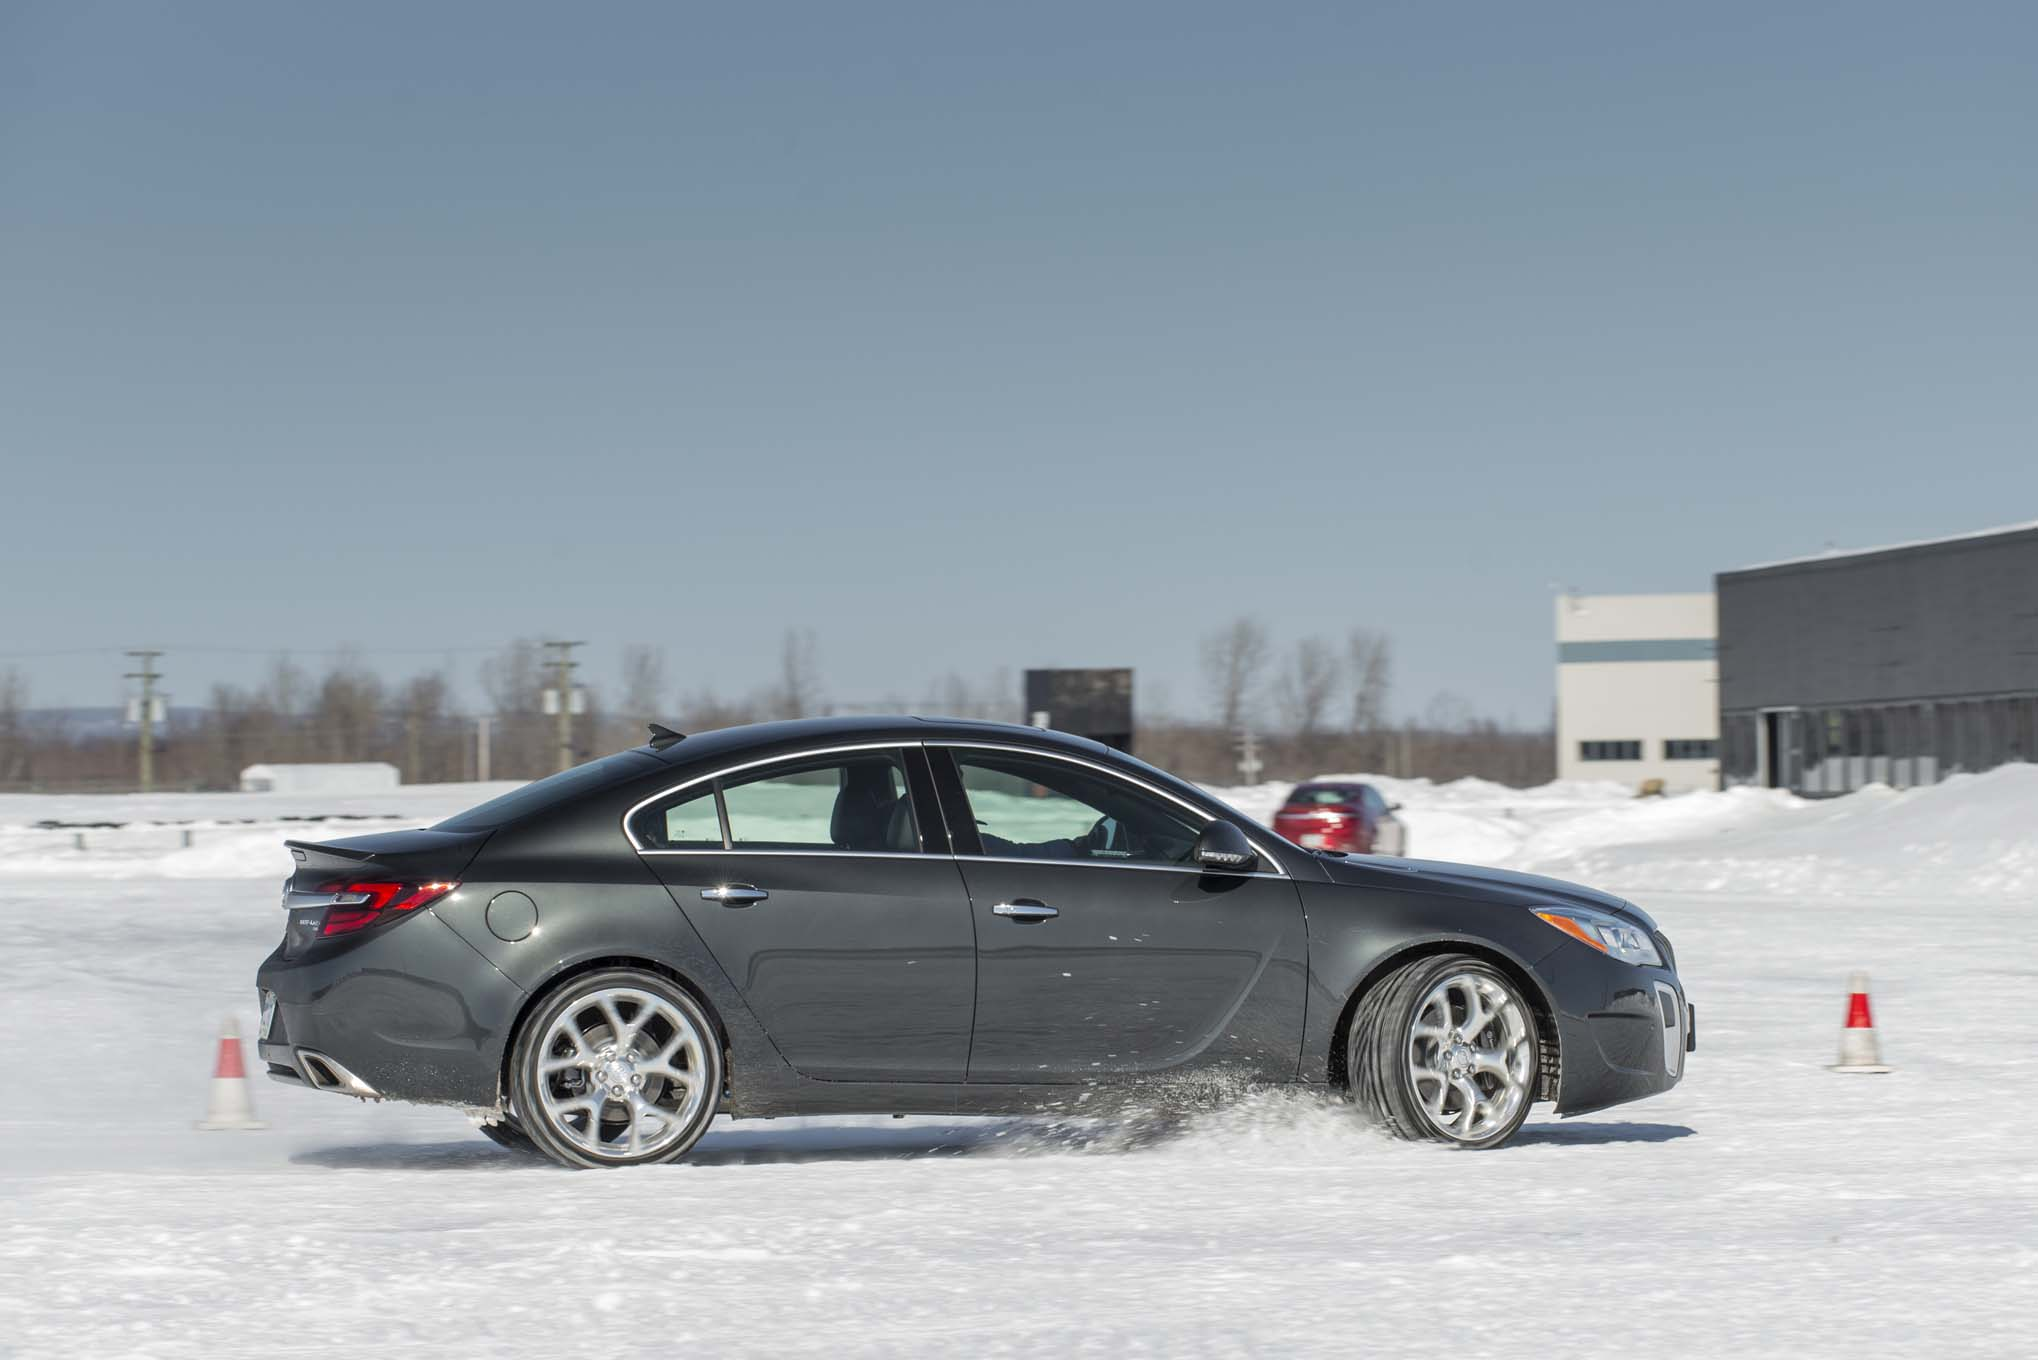 Chicago Buick GMC Dealer Offers Free Cars If Theres A White Christmas - Chicago buick dealer